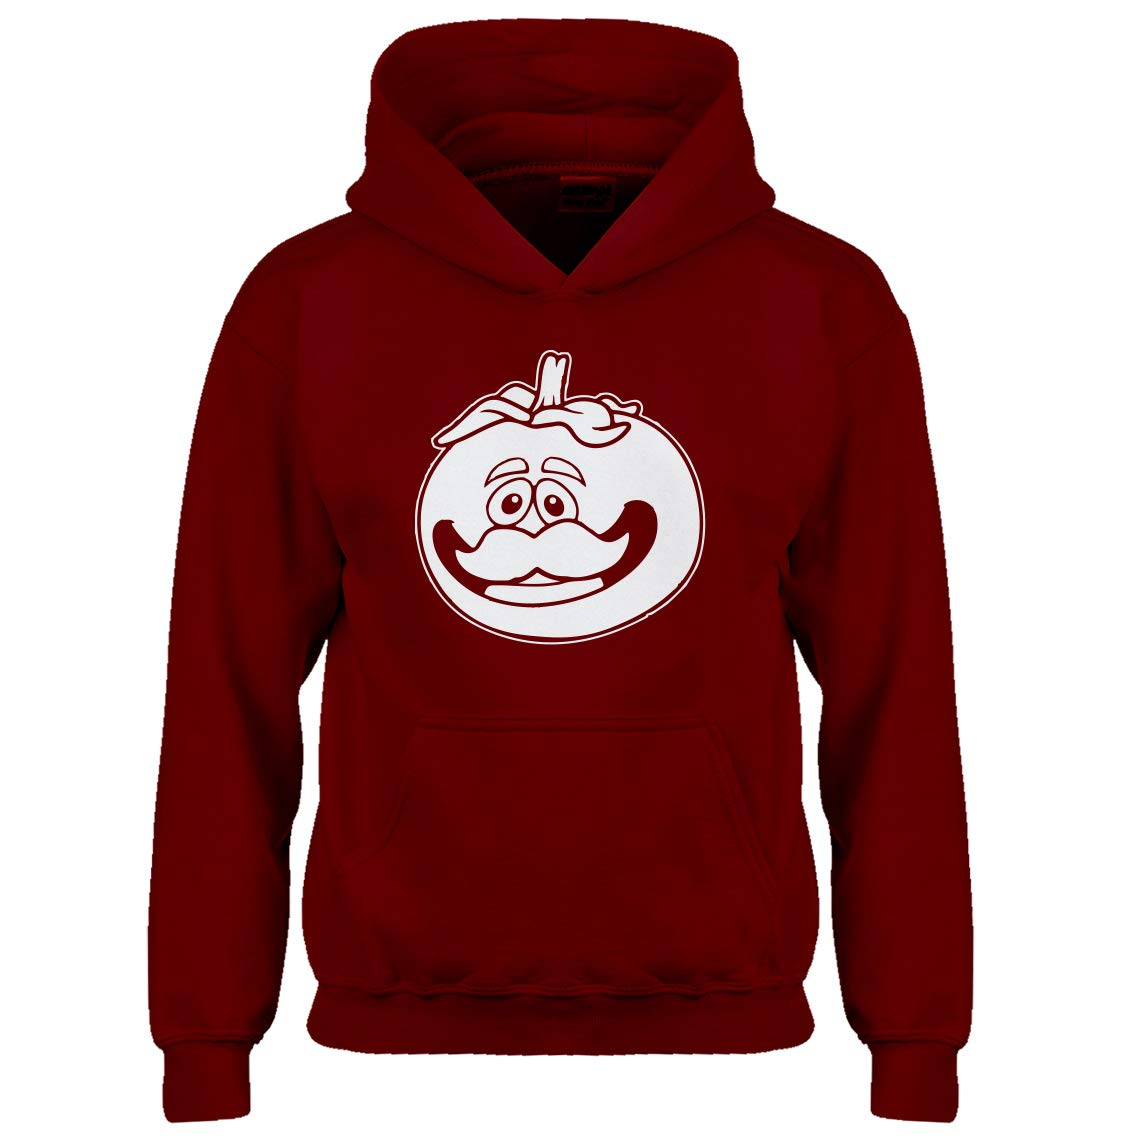 Indica Plateau Youth Tomatohead Kids Hoodie